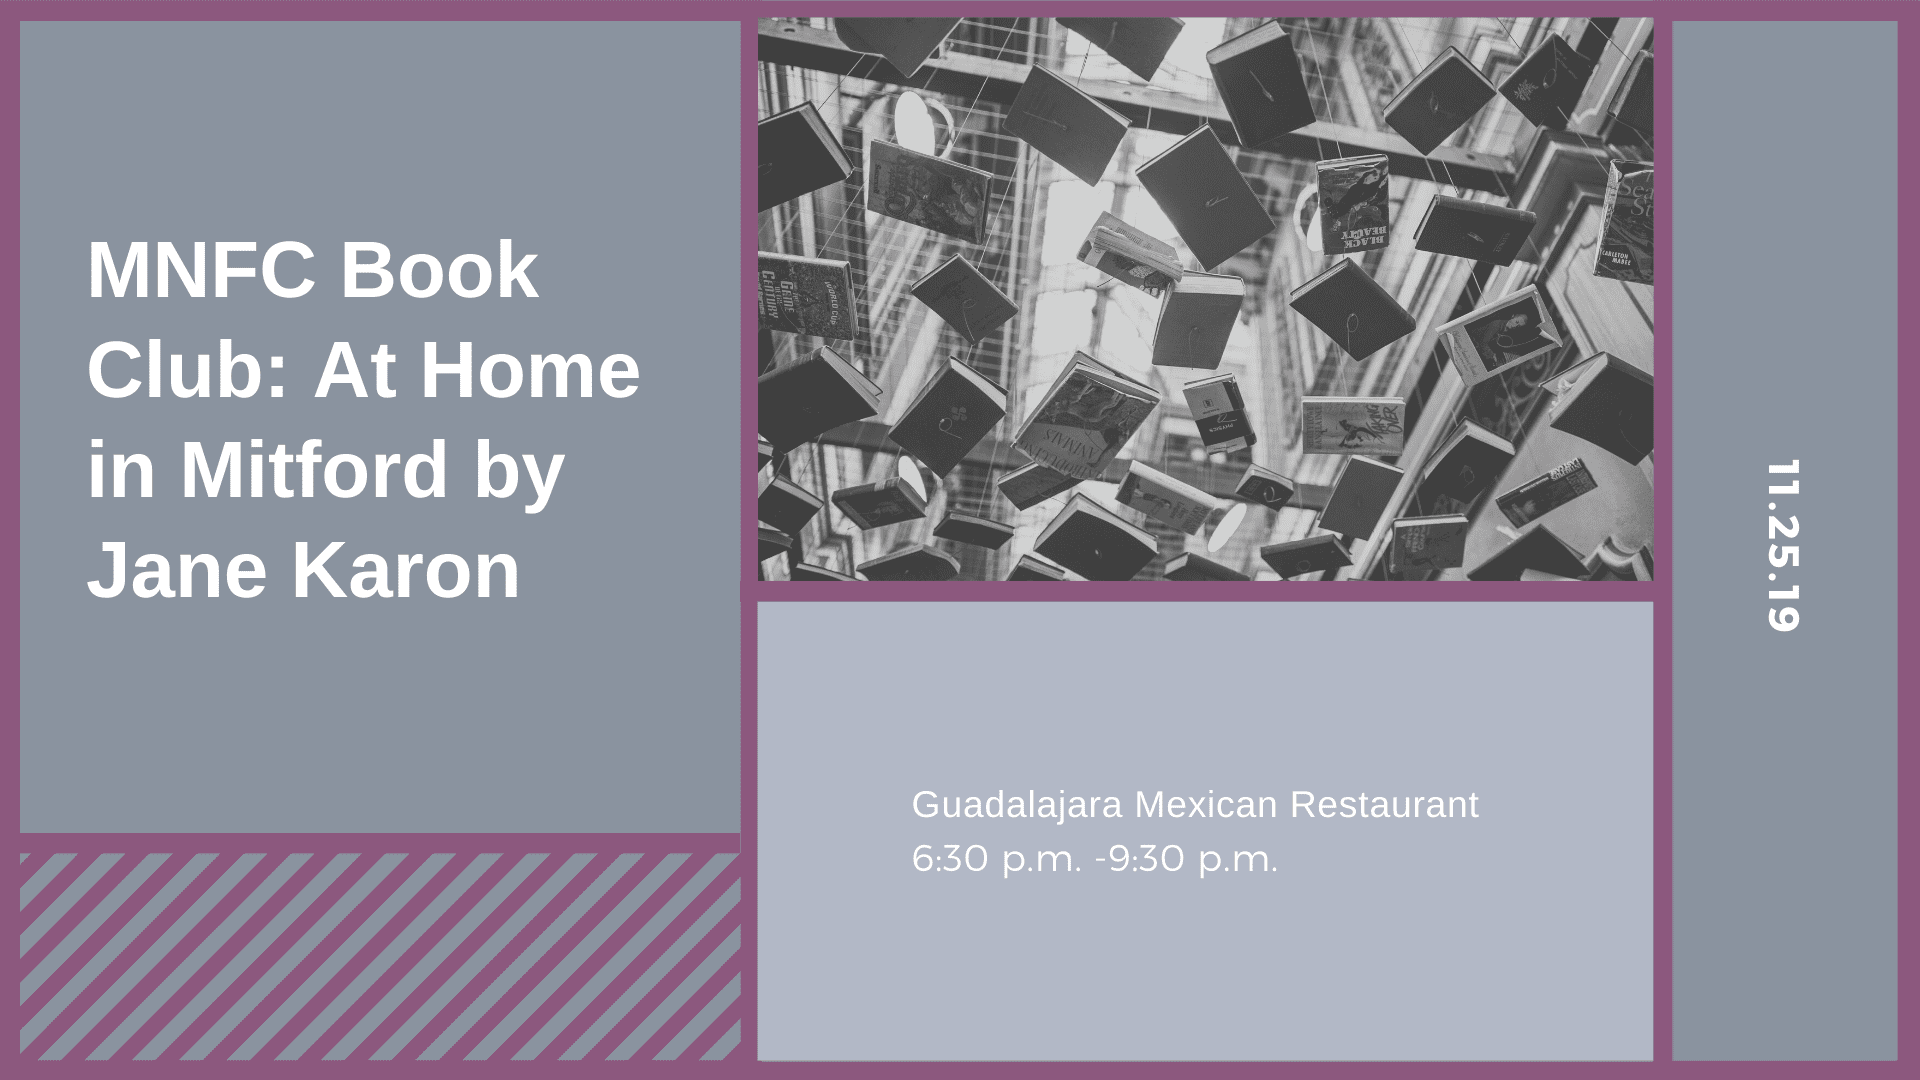 MNFC Book Club: At Home in Mitford by Jane Karon